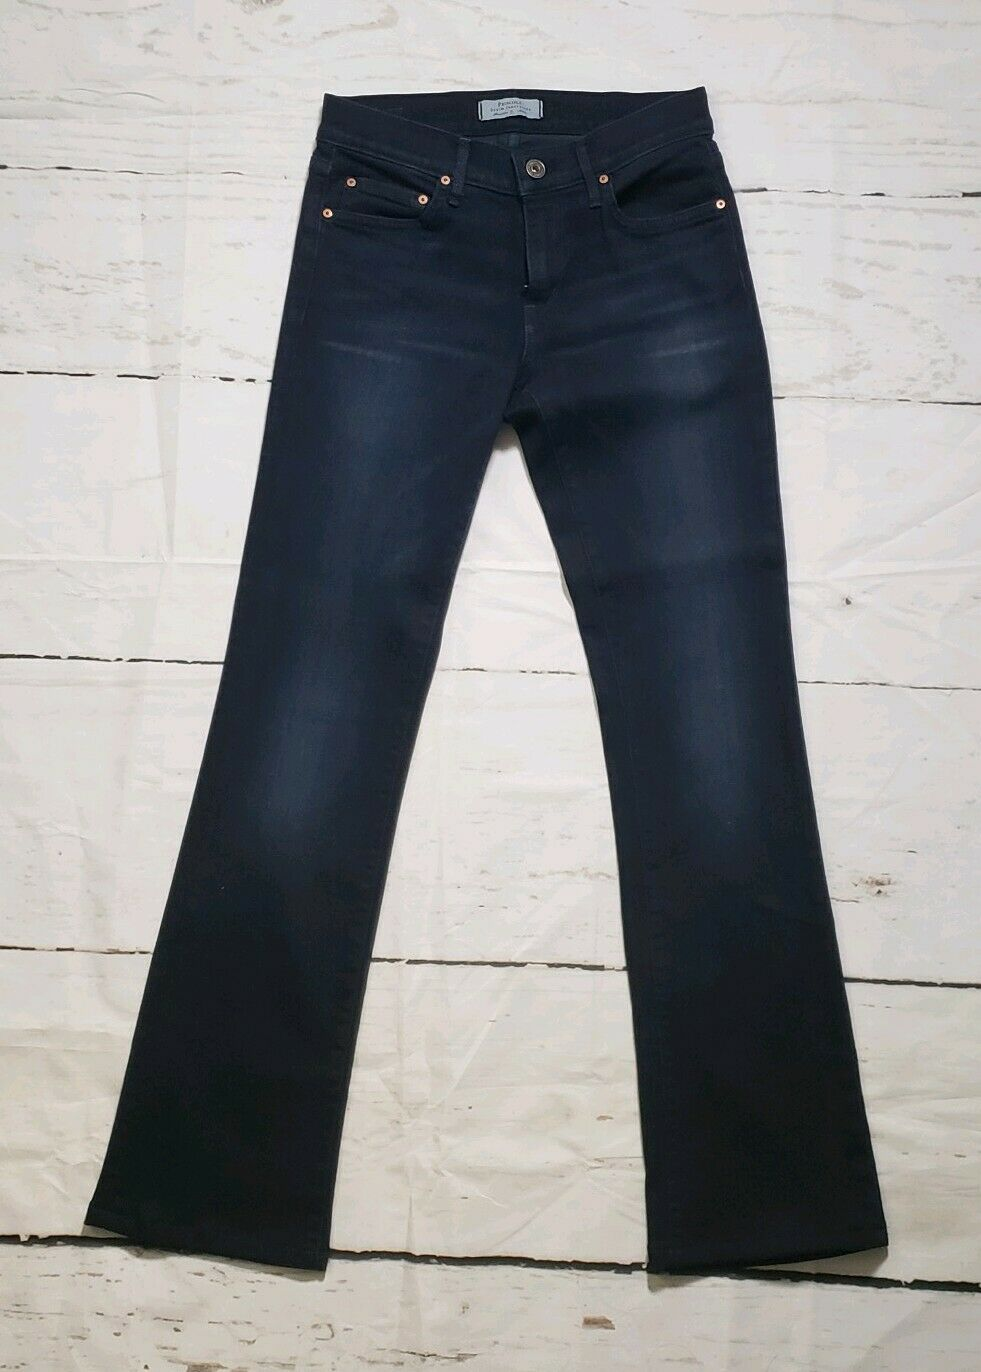 Principle Denim Innovators Womens Dark Wash Truth Jeans Size 25